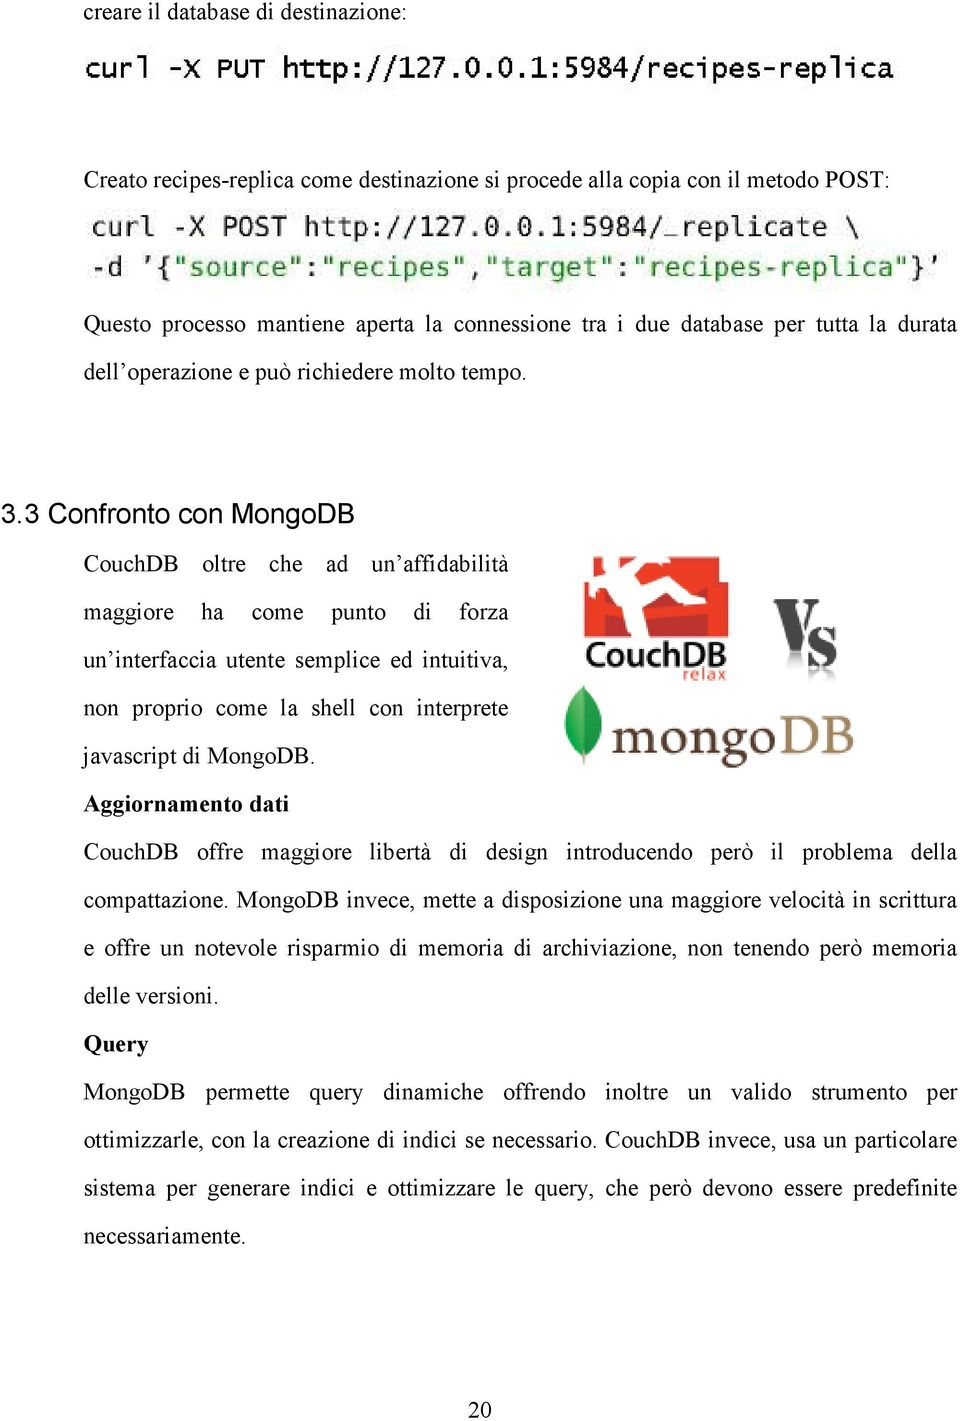 3 Confronto con MongoDB CouchDB oltre che ad un affidabilità maggiore ha come punto di forza un interfaccia utente semplice ed intuitiva, non proprio come la shell con interprete javascript di